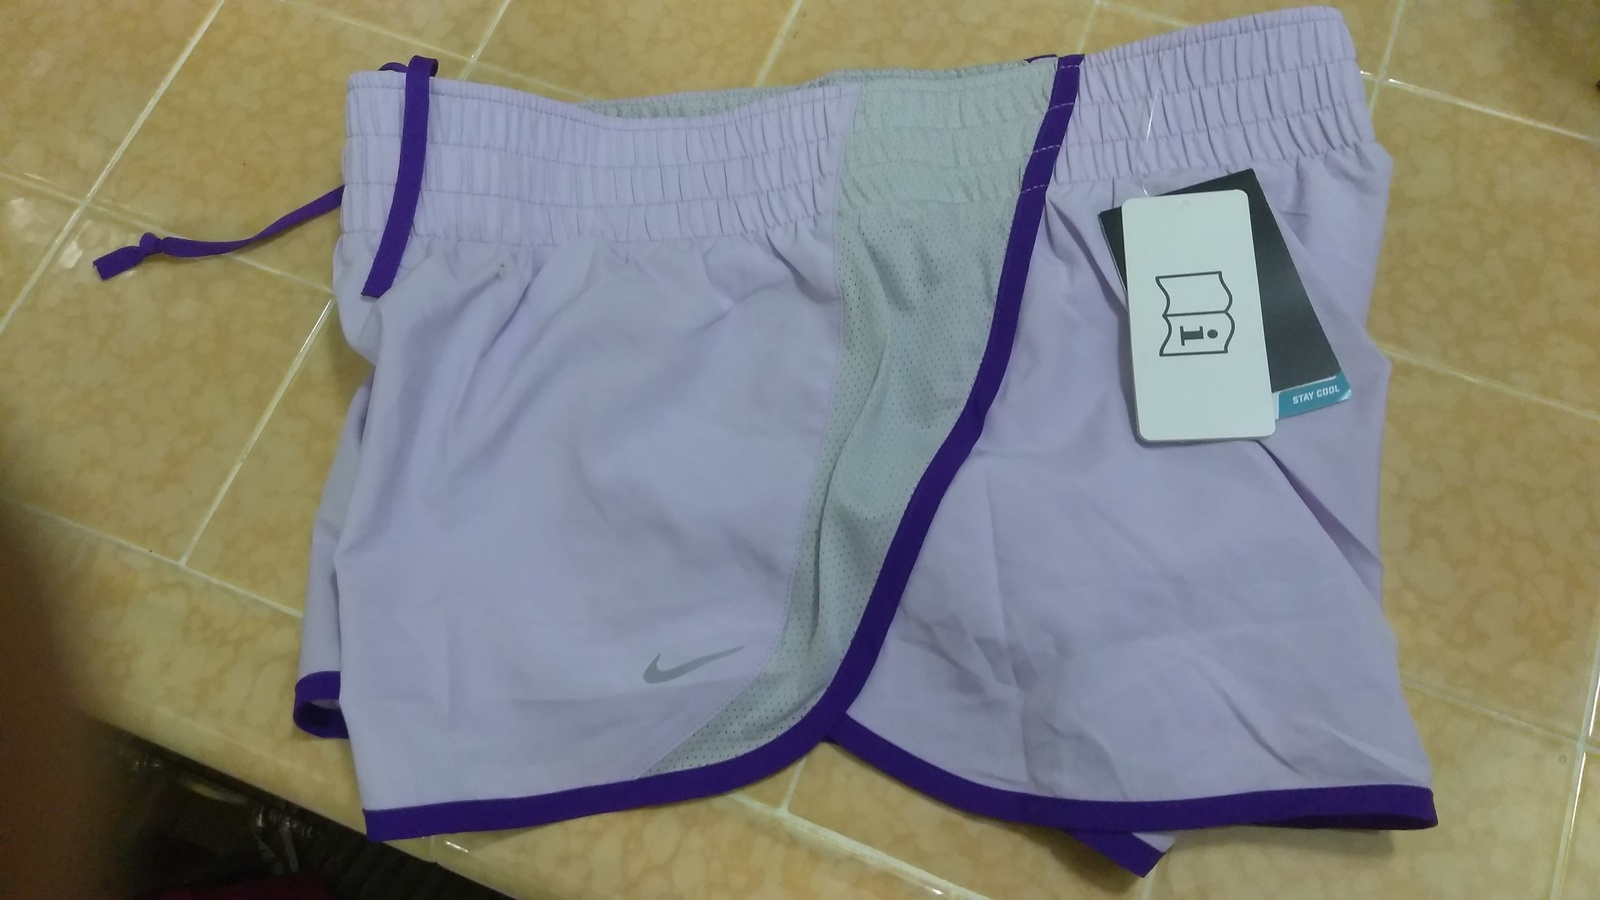 Primary image for New Nike Unisex All Sports Shorts Light Purple Design Sz M